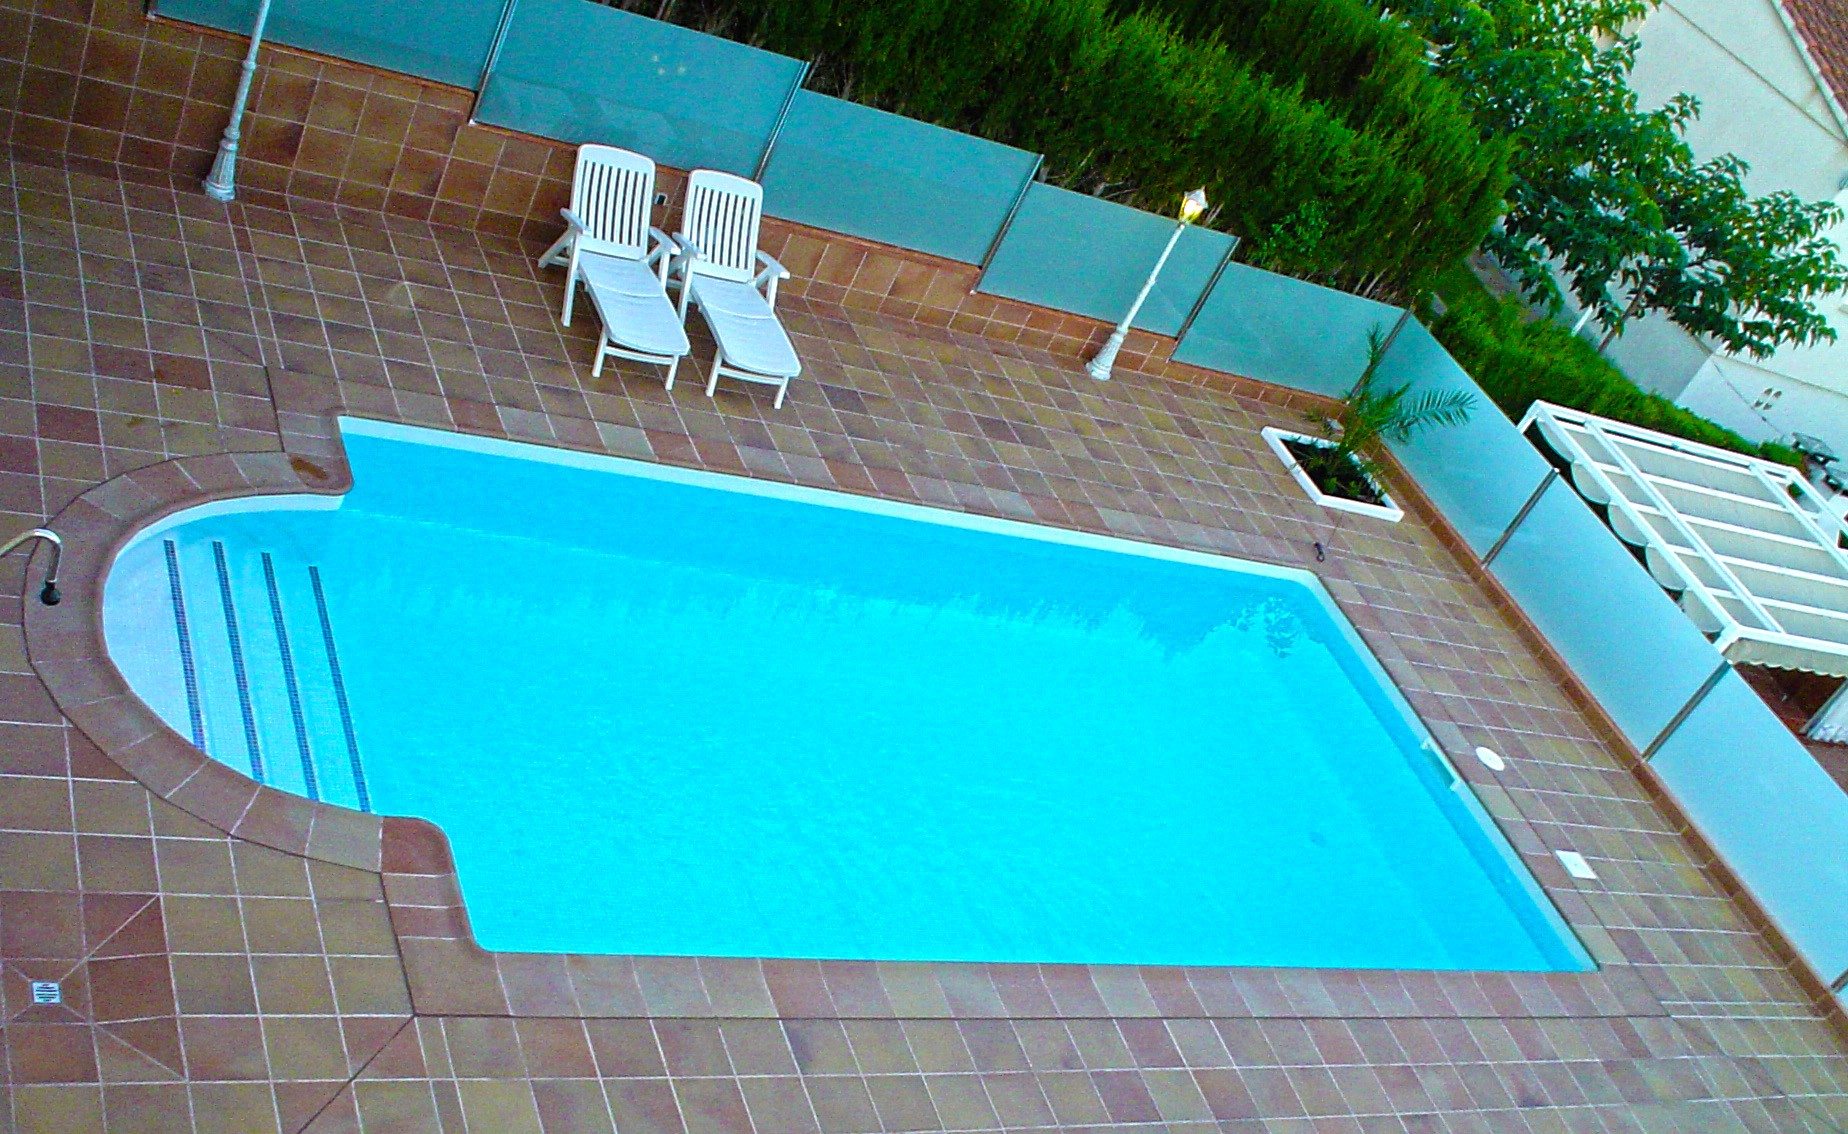 Piscinas obra precios amazing piscina with piscinas obra for Medidas de piscinas de obra